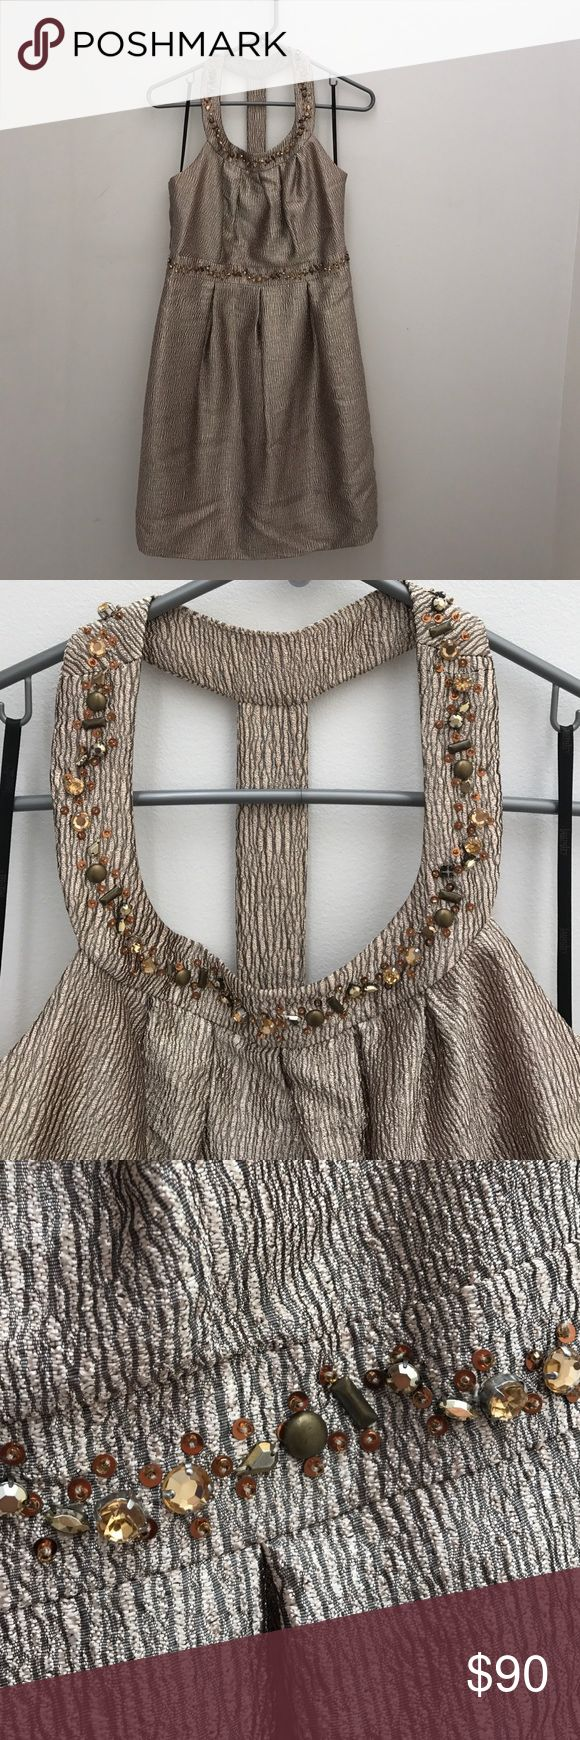 Laundry by Shelli Segal dress! GORGEOUS golden metallic dress with sequin details. Laundry by Shelli Segal Dresses